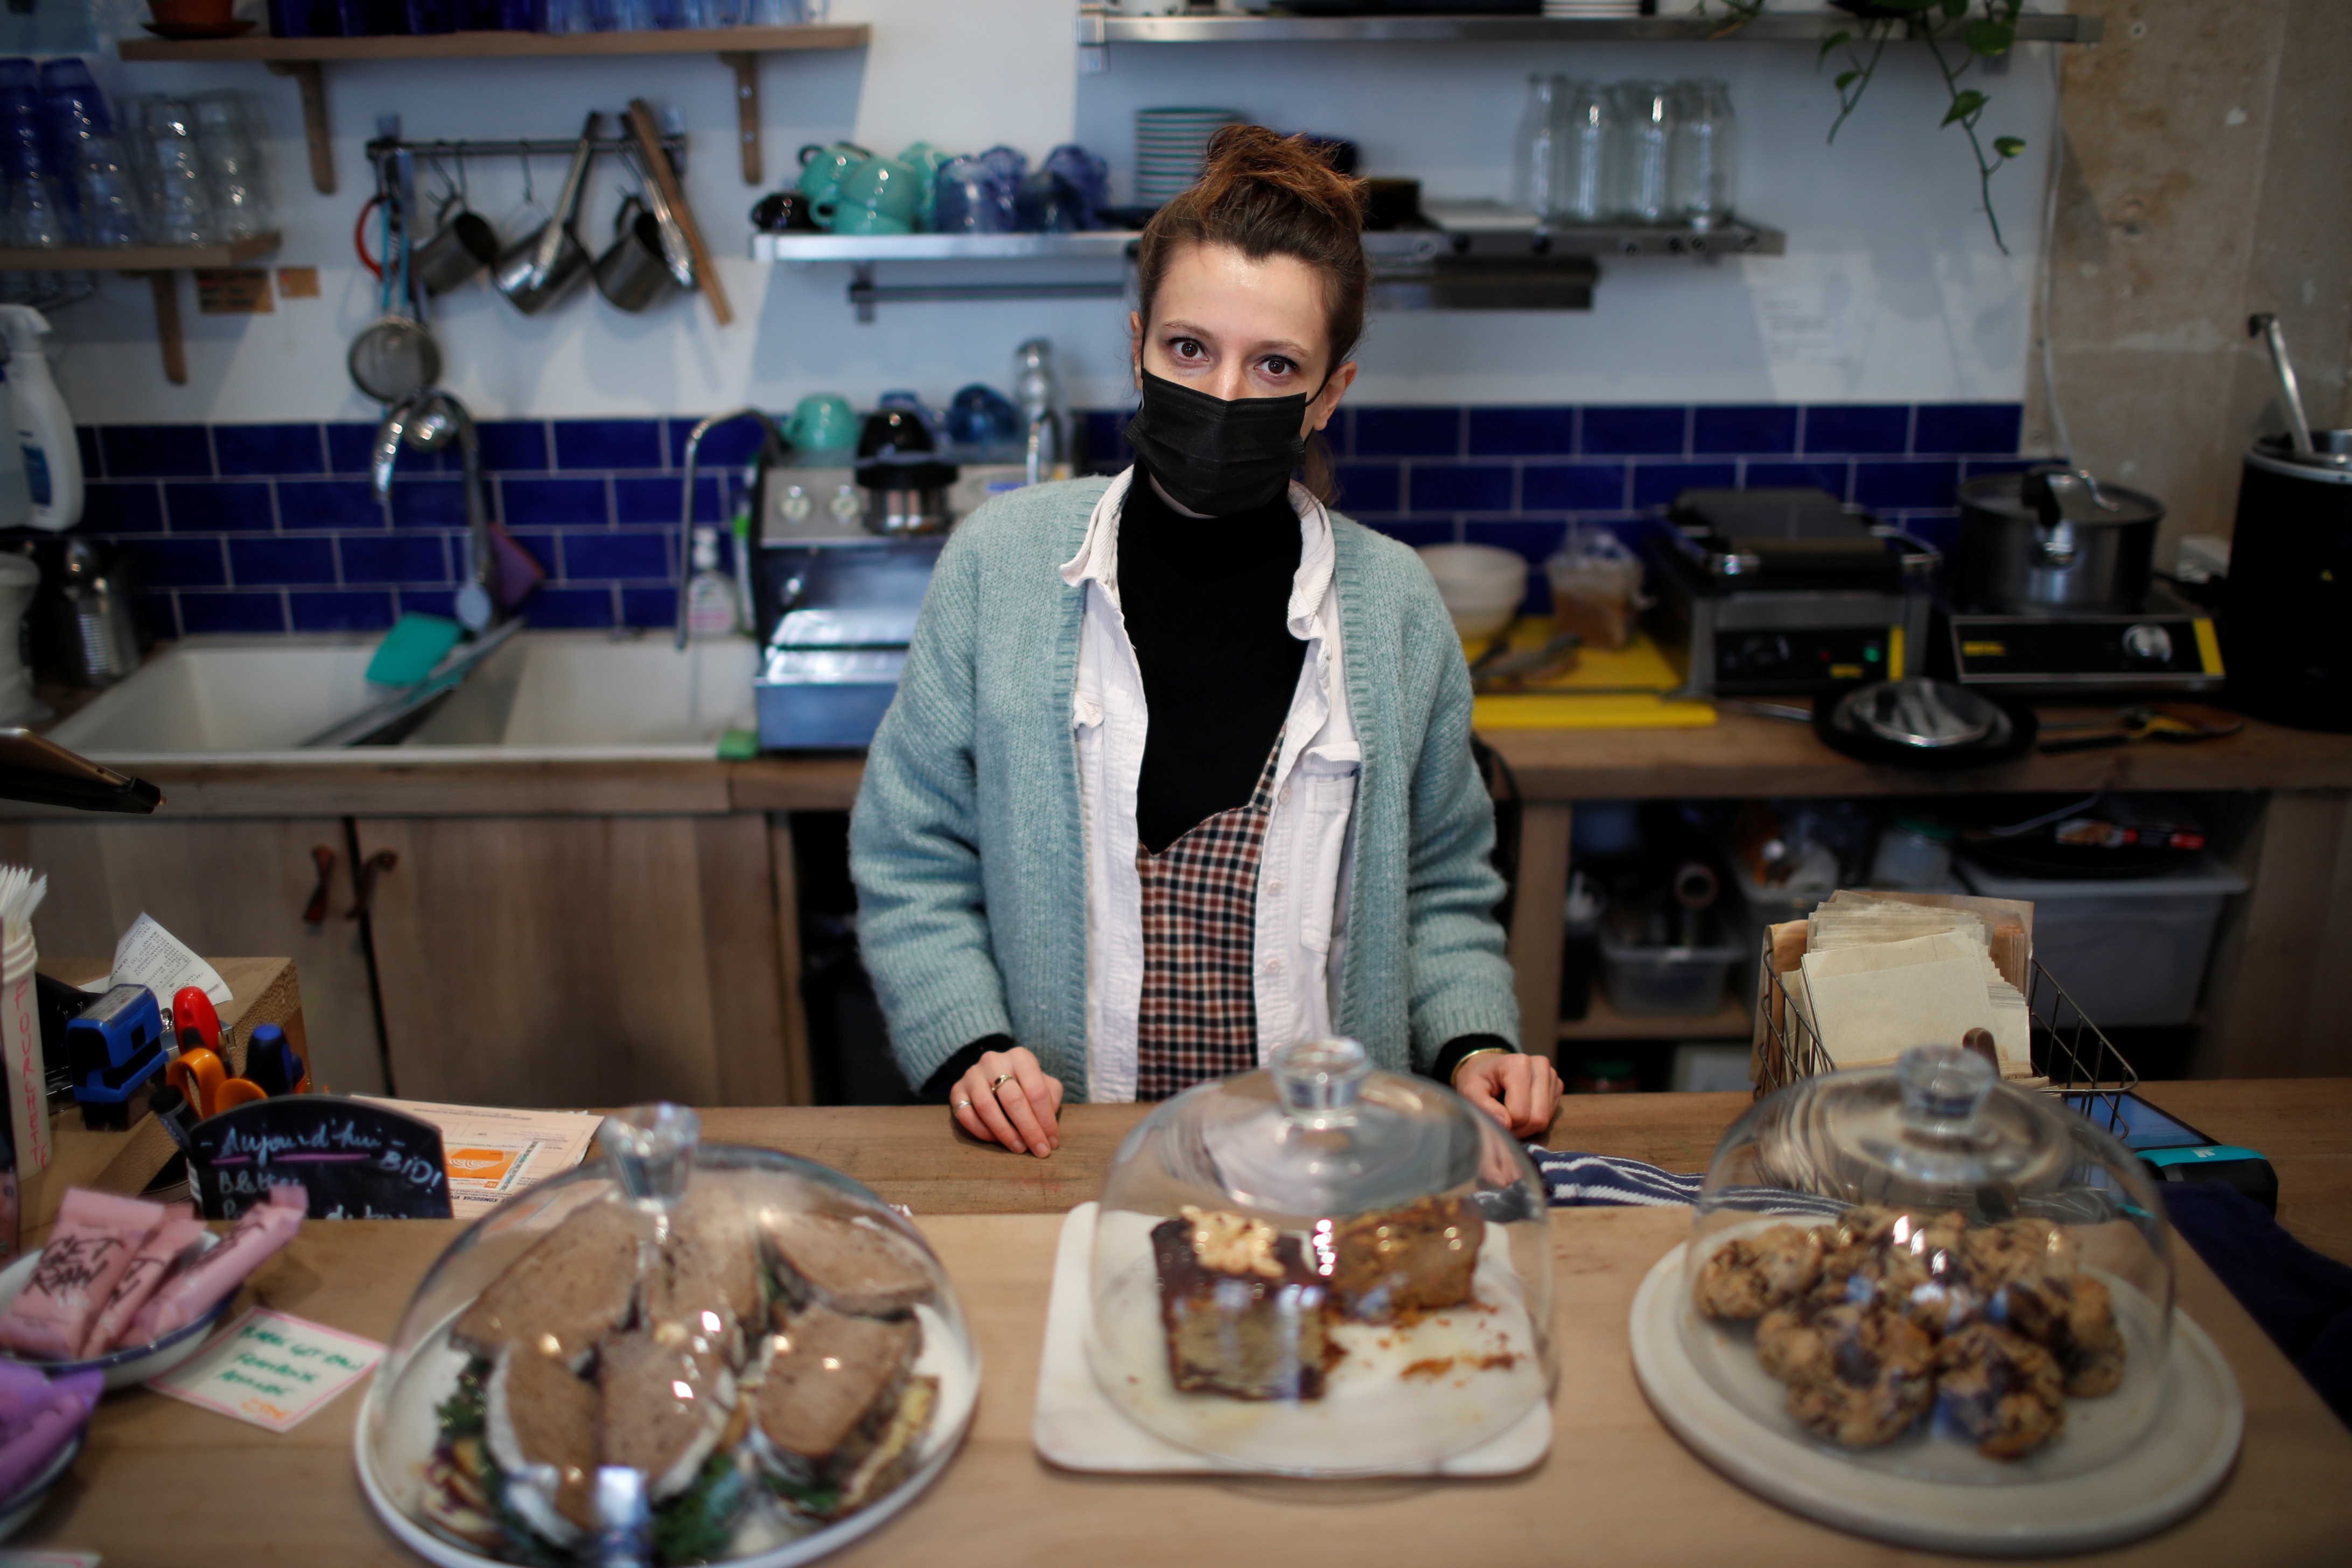 A woman wearing a mask behind baked goods at a coffeeshop or bakery